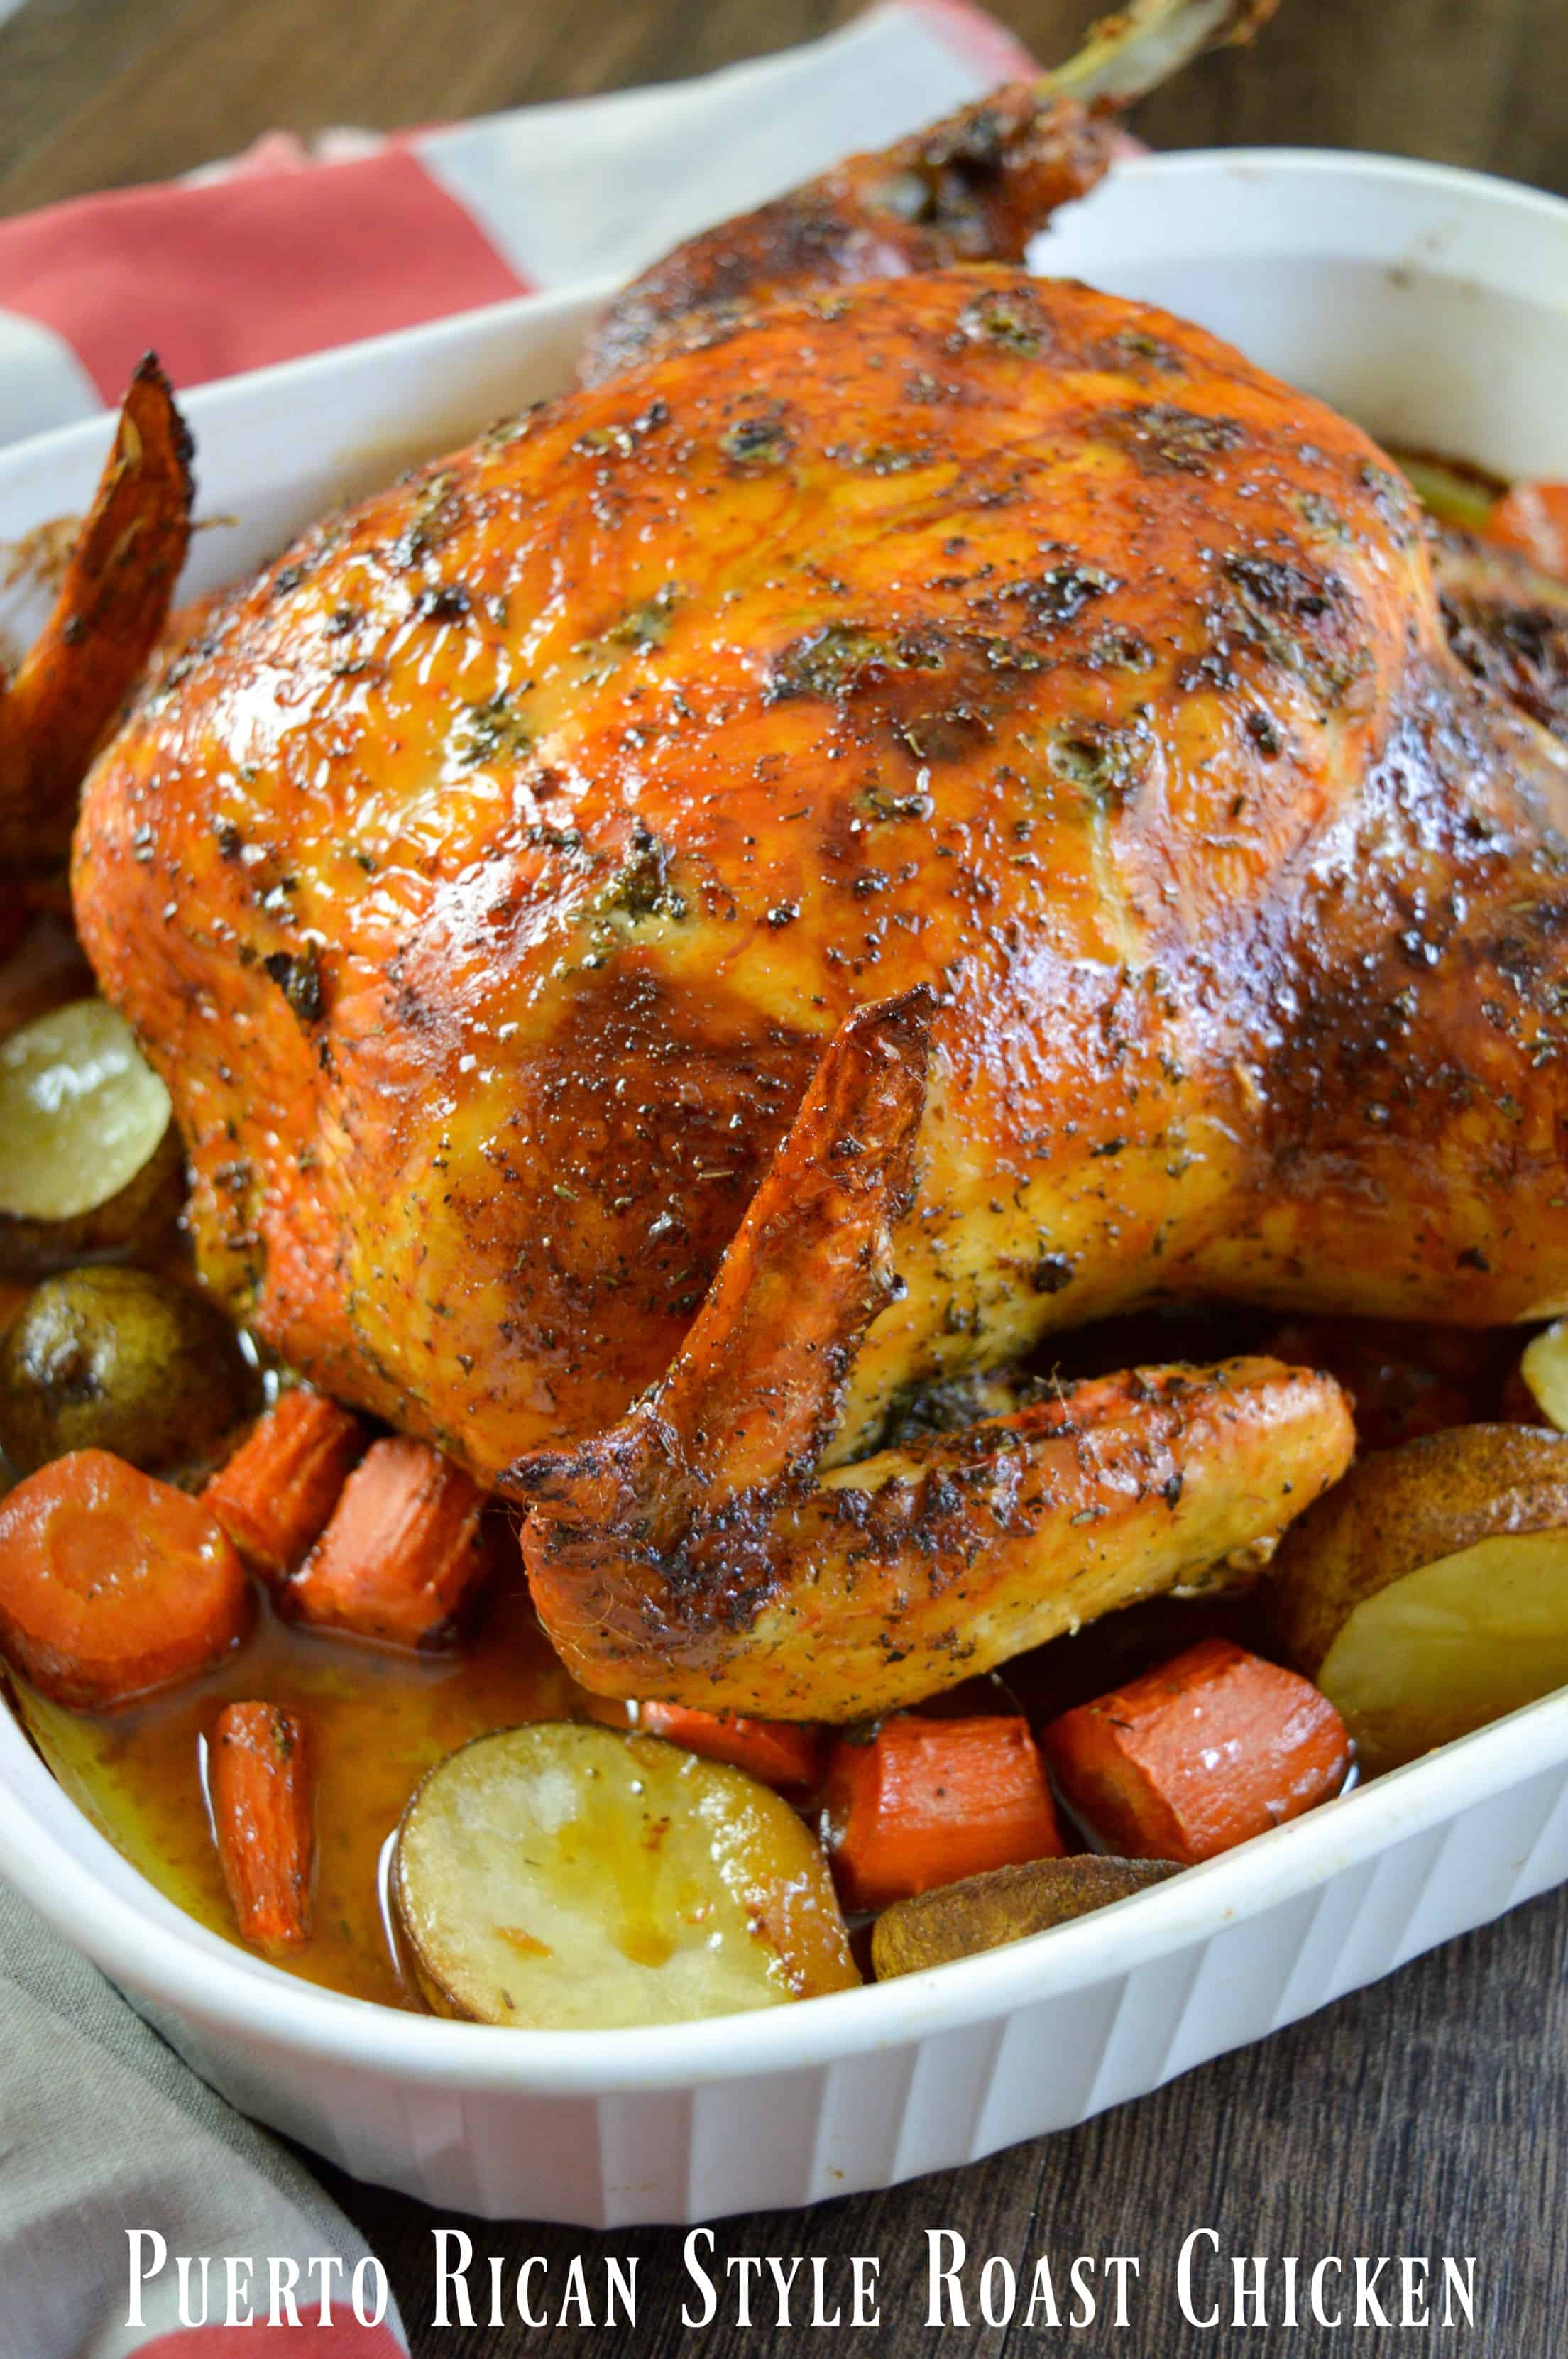 Expand your menu with recipes for the perfect roast chicken, fried chicken, grilled chicken, chicken wings and more.